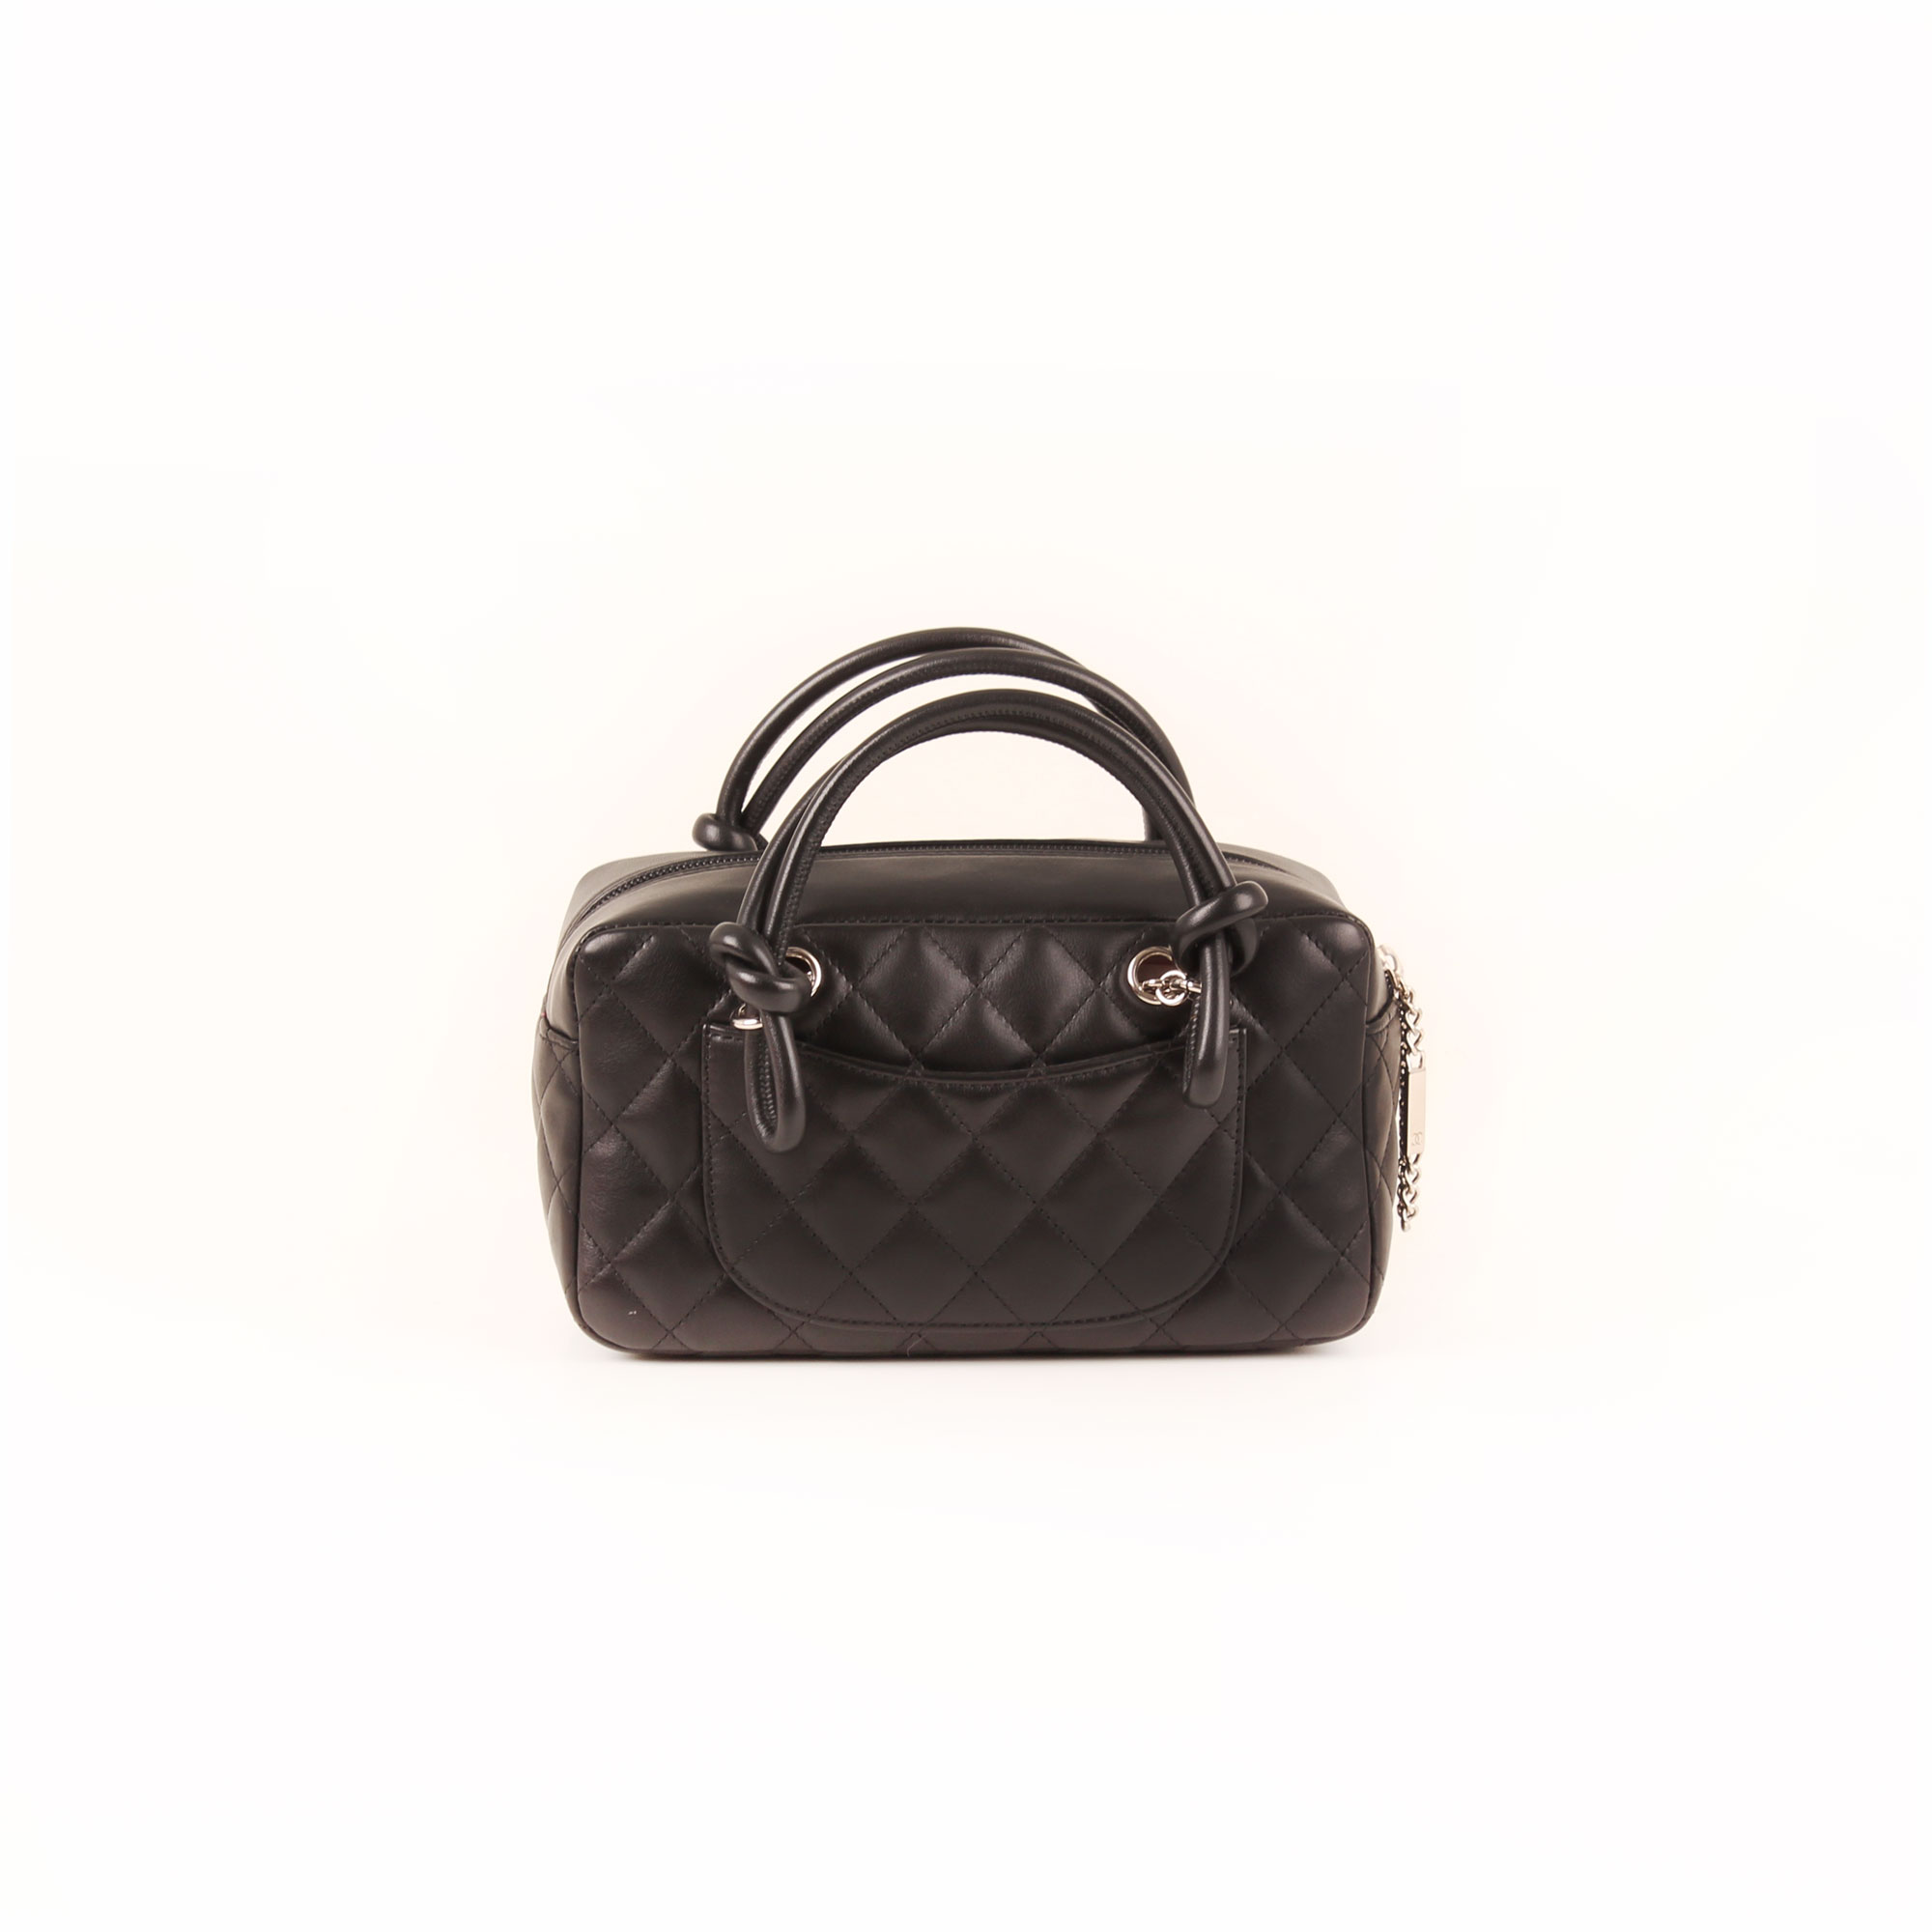 8ee97018083a Chanel Bag Black Quilted Cambon Mini Tote Bag